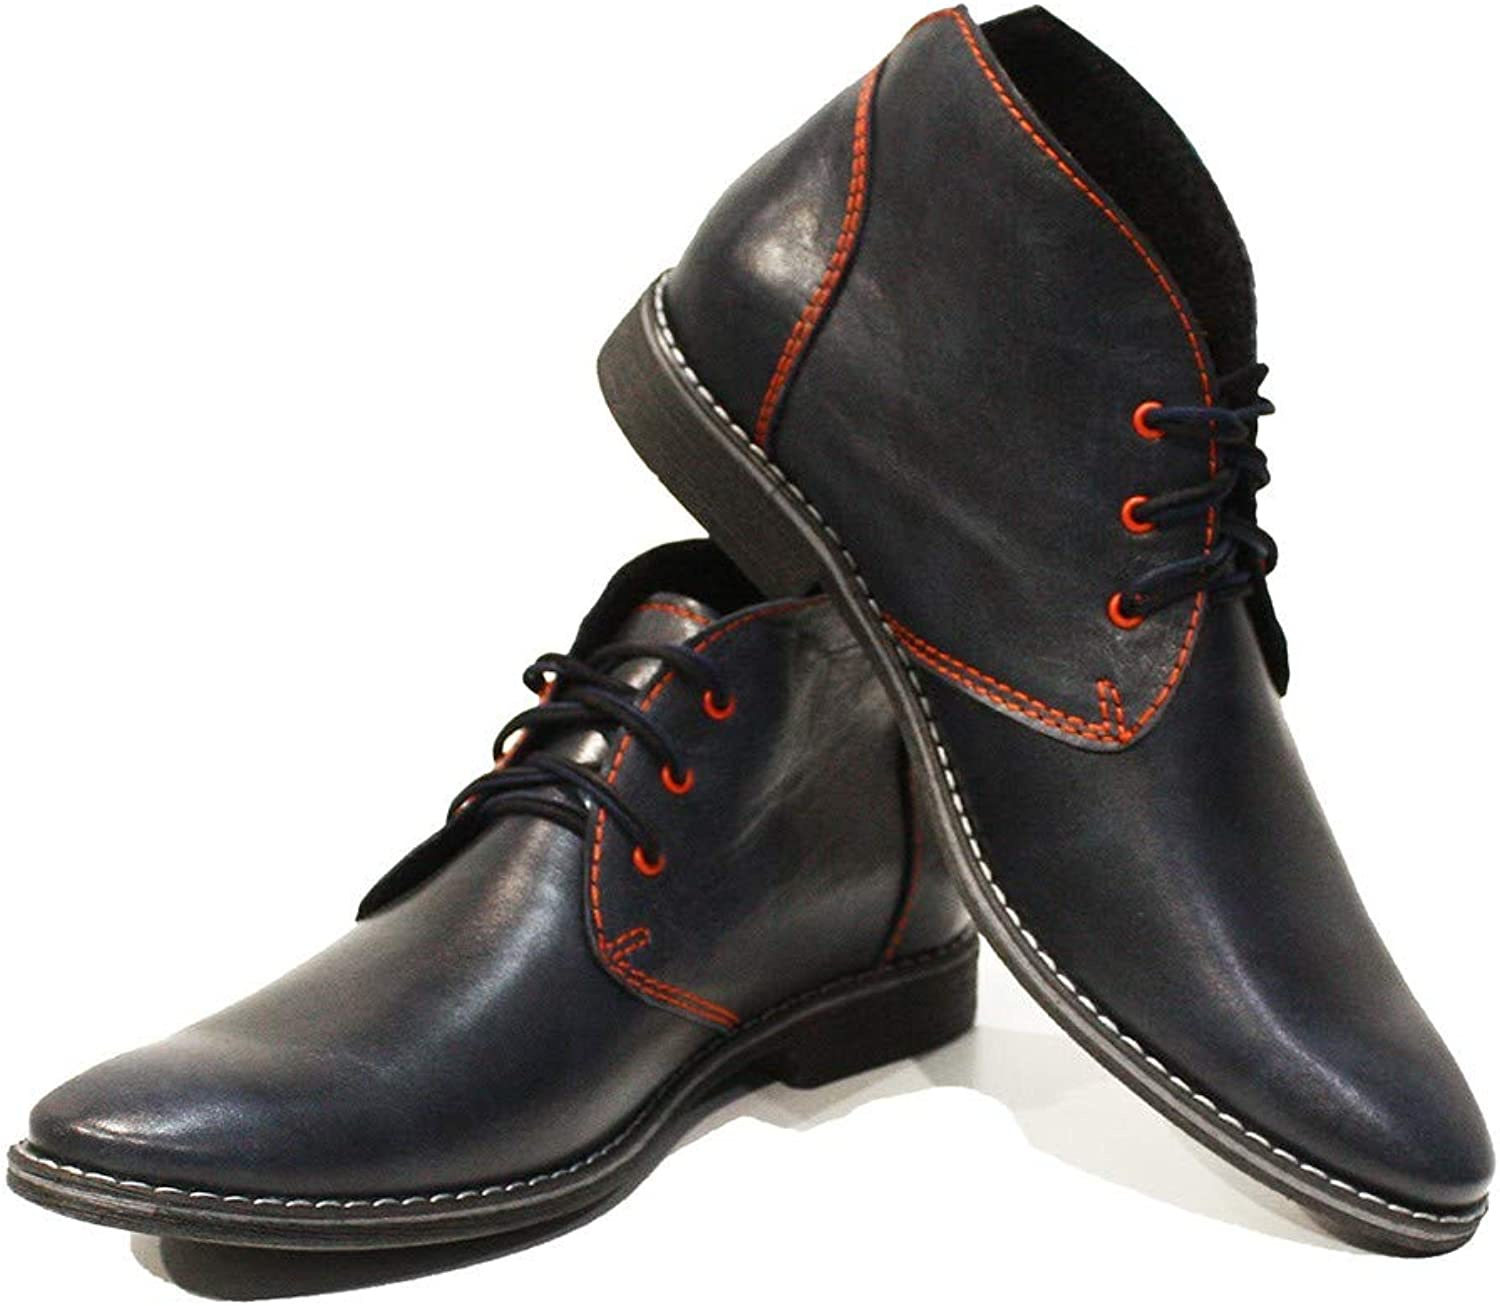 Peppeshoes Modello Giorgio - Handmade Italian Leather Mens color Black Ankle Chukka Boots - Cowhide Smooth Leather - Lace-Up